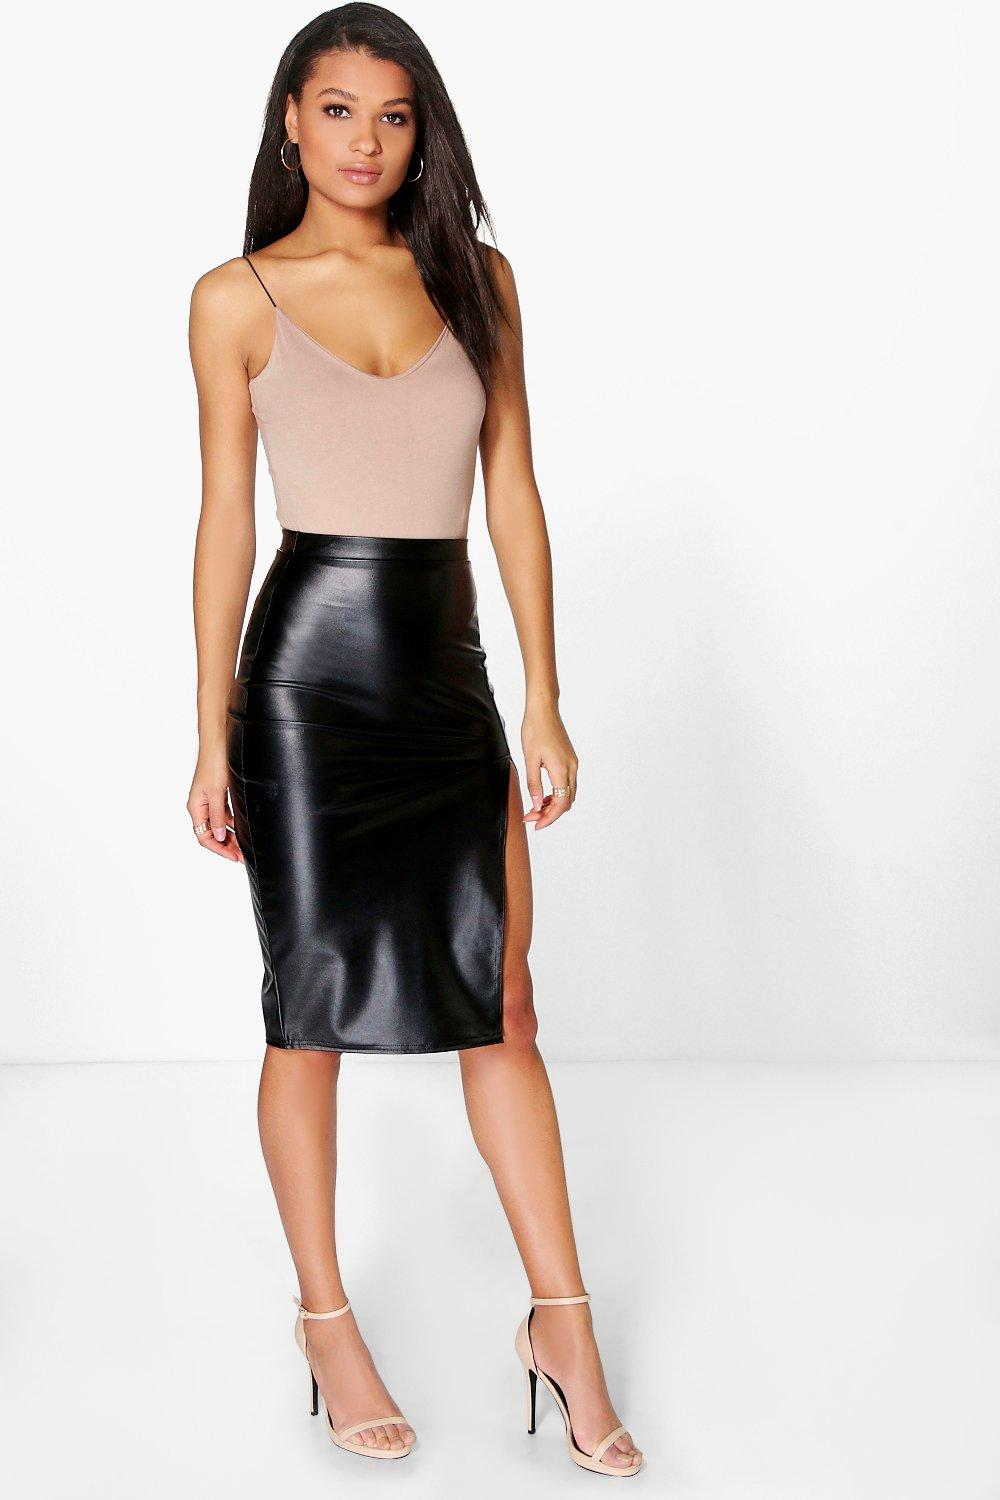 Loraya Side Split Leather Look Midi Skirt at boohoo.com